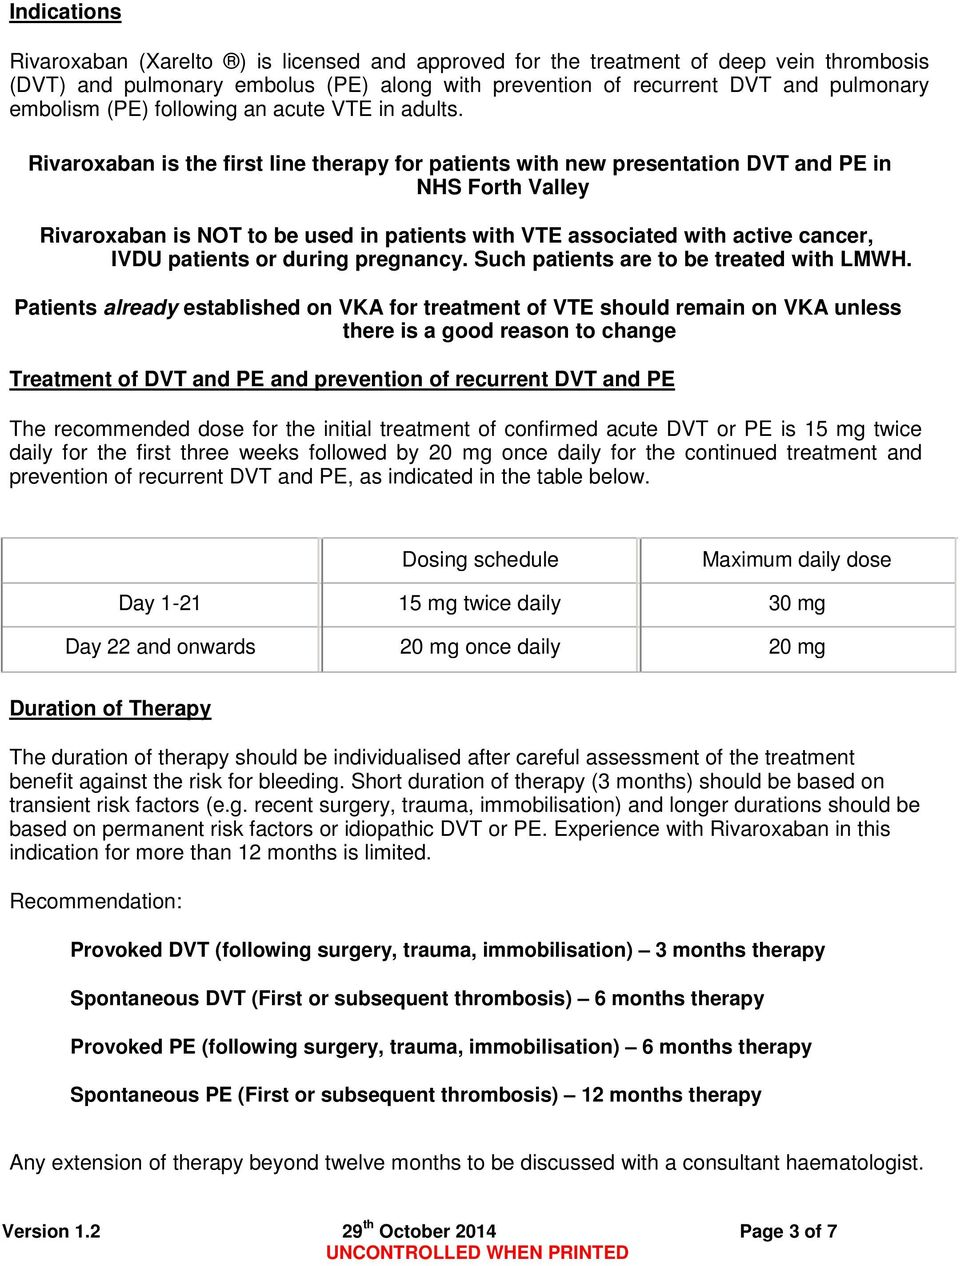 Rivaroxaban is the first line therapy for patients with new presentation DVT and PE in NHS Forth Valley Rivaroxaban is NOT to be used in patients with VTE associated with active cancer, IVDU patients